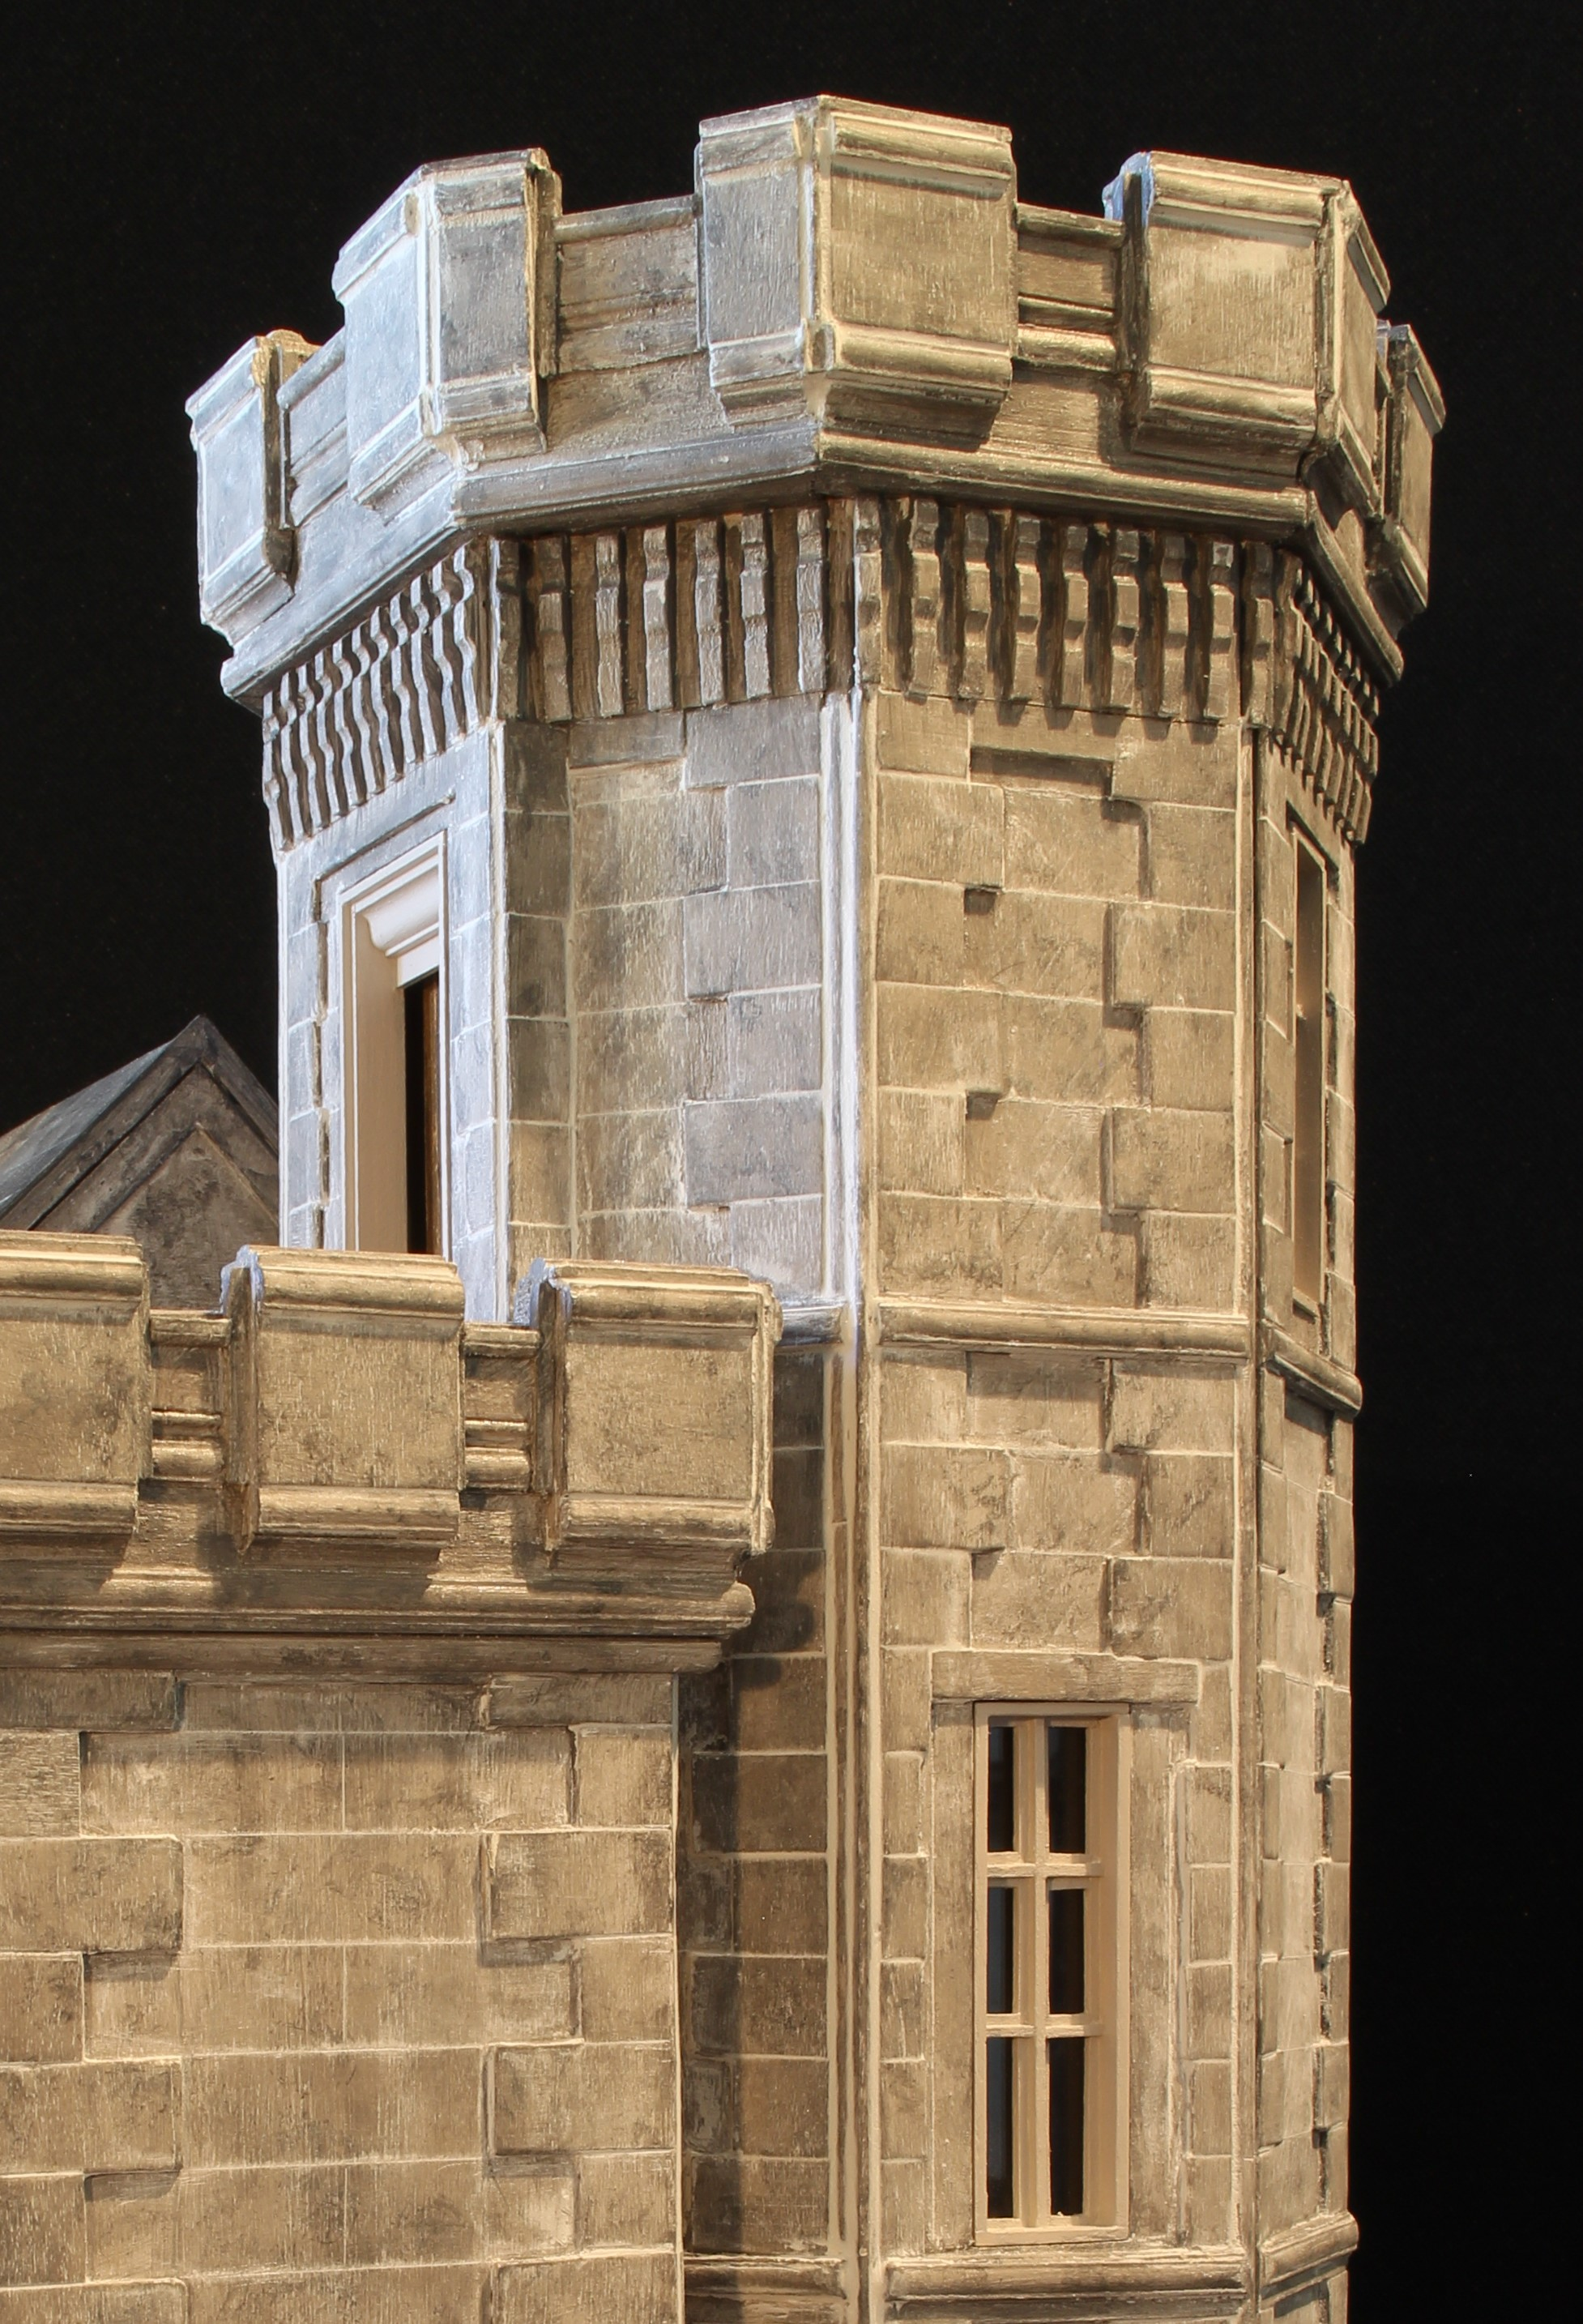 Elongated Octagonal Tower